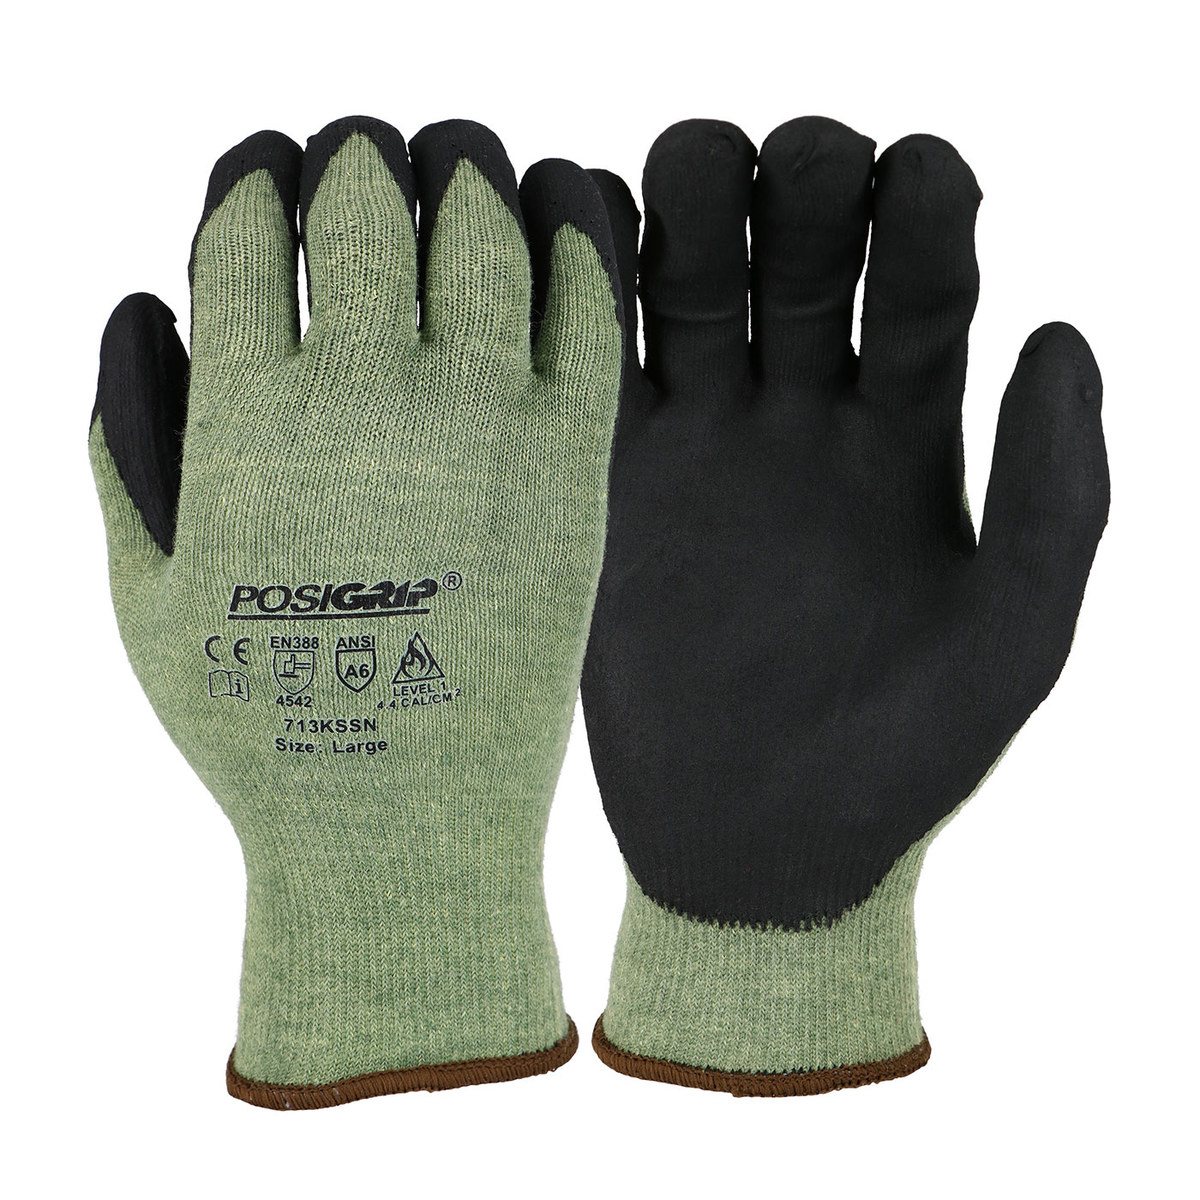 6 Snap-On Hot Sleeve Heat Protection Hand Arm Gloves Shop Made With Kevlar